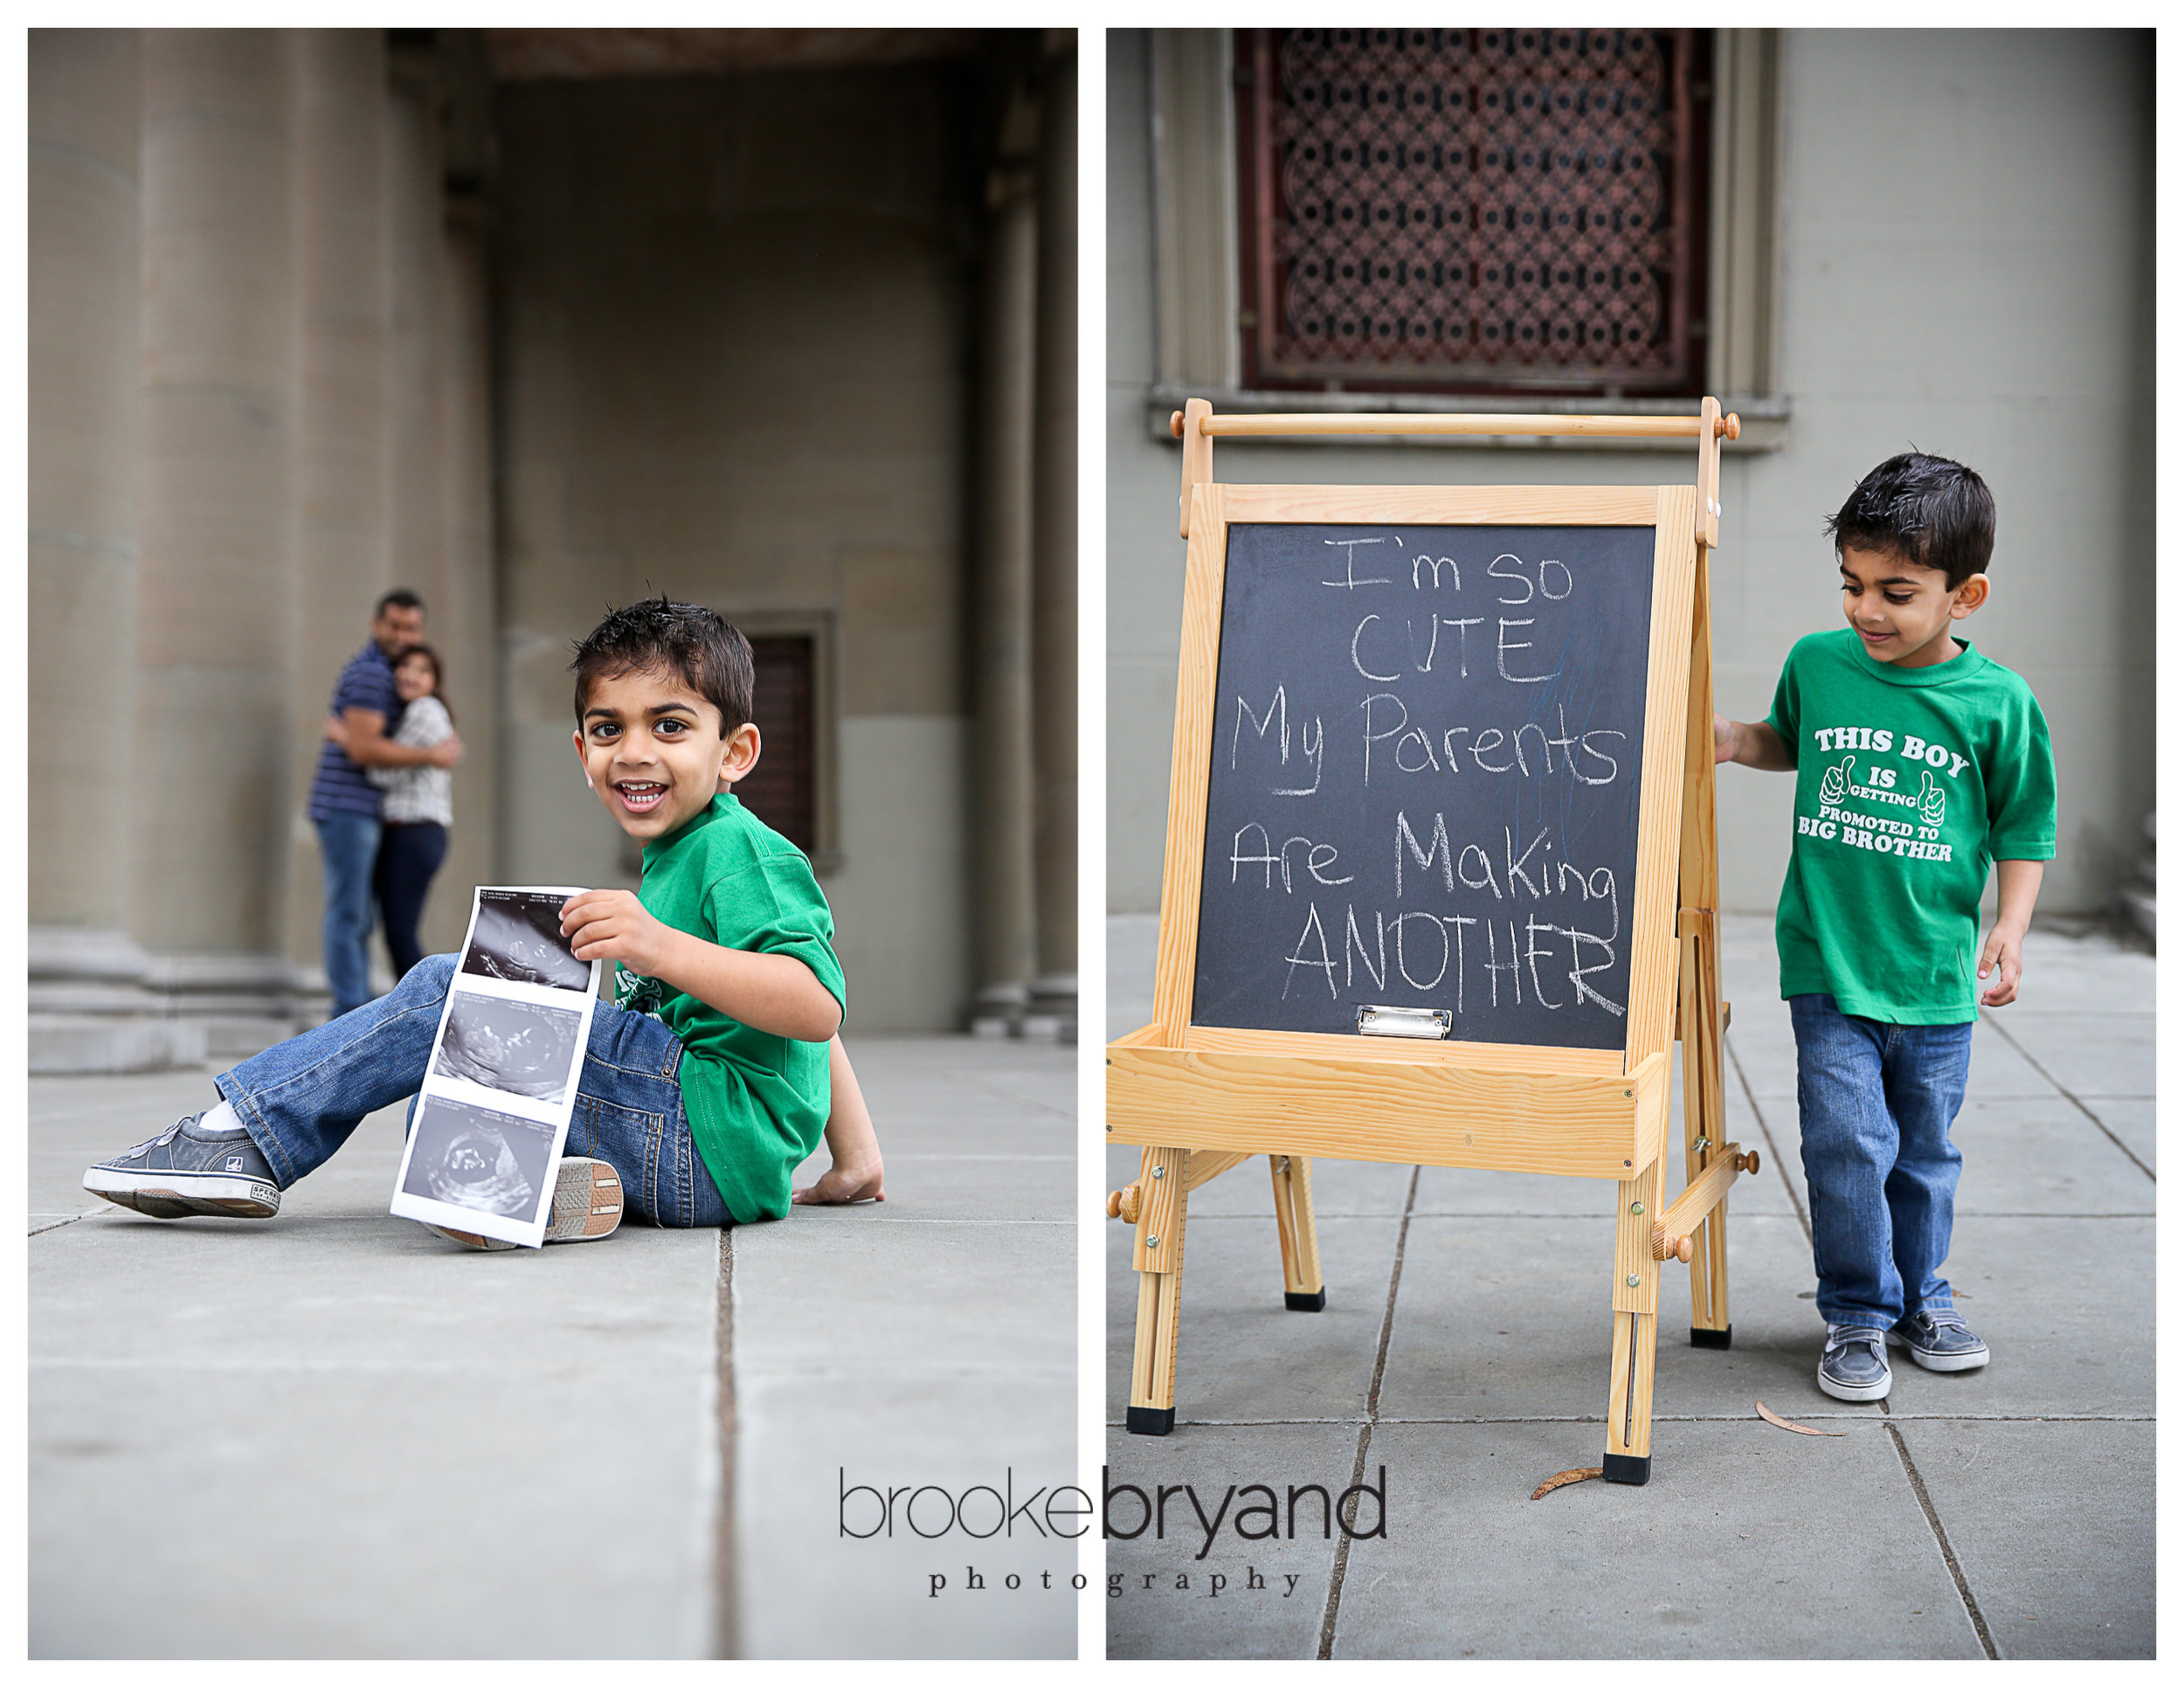 2up-brooke-bryand-photography-pregnancy-announcement-golden-gate-park-family-photos-1.jpg